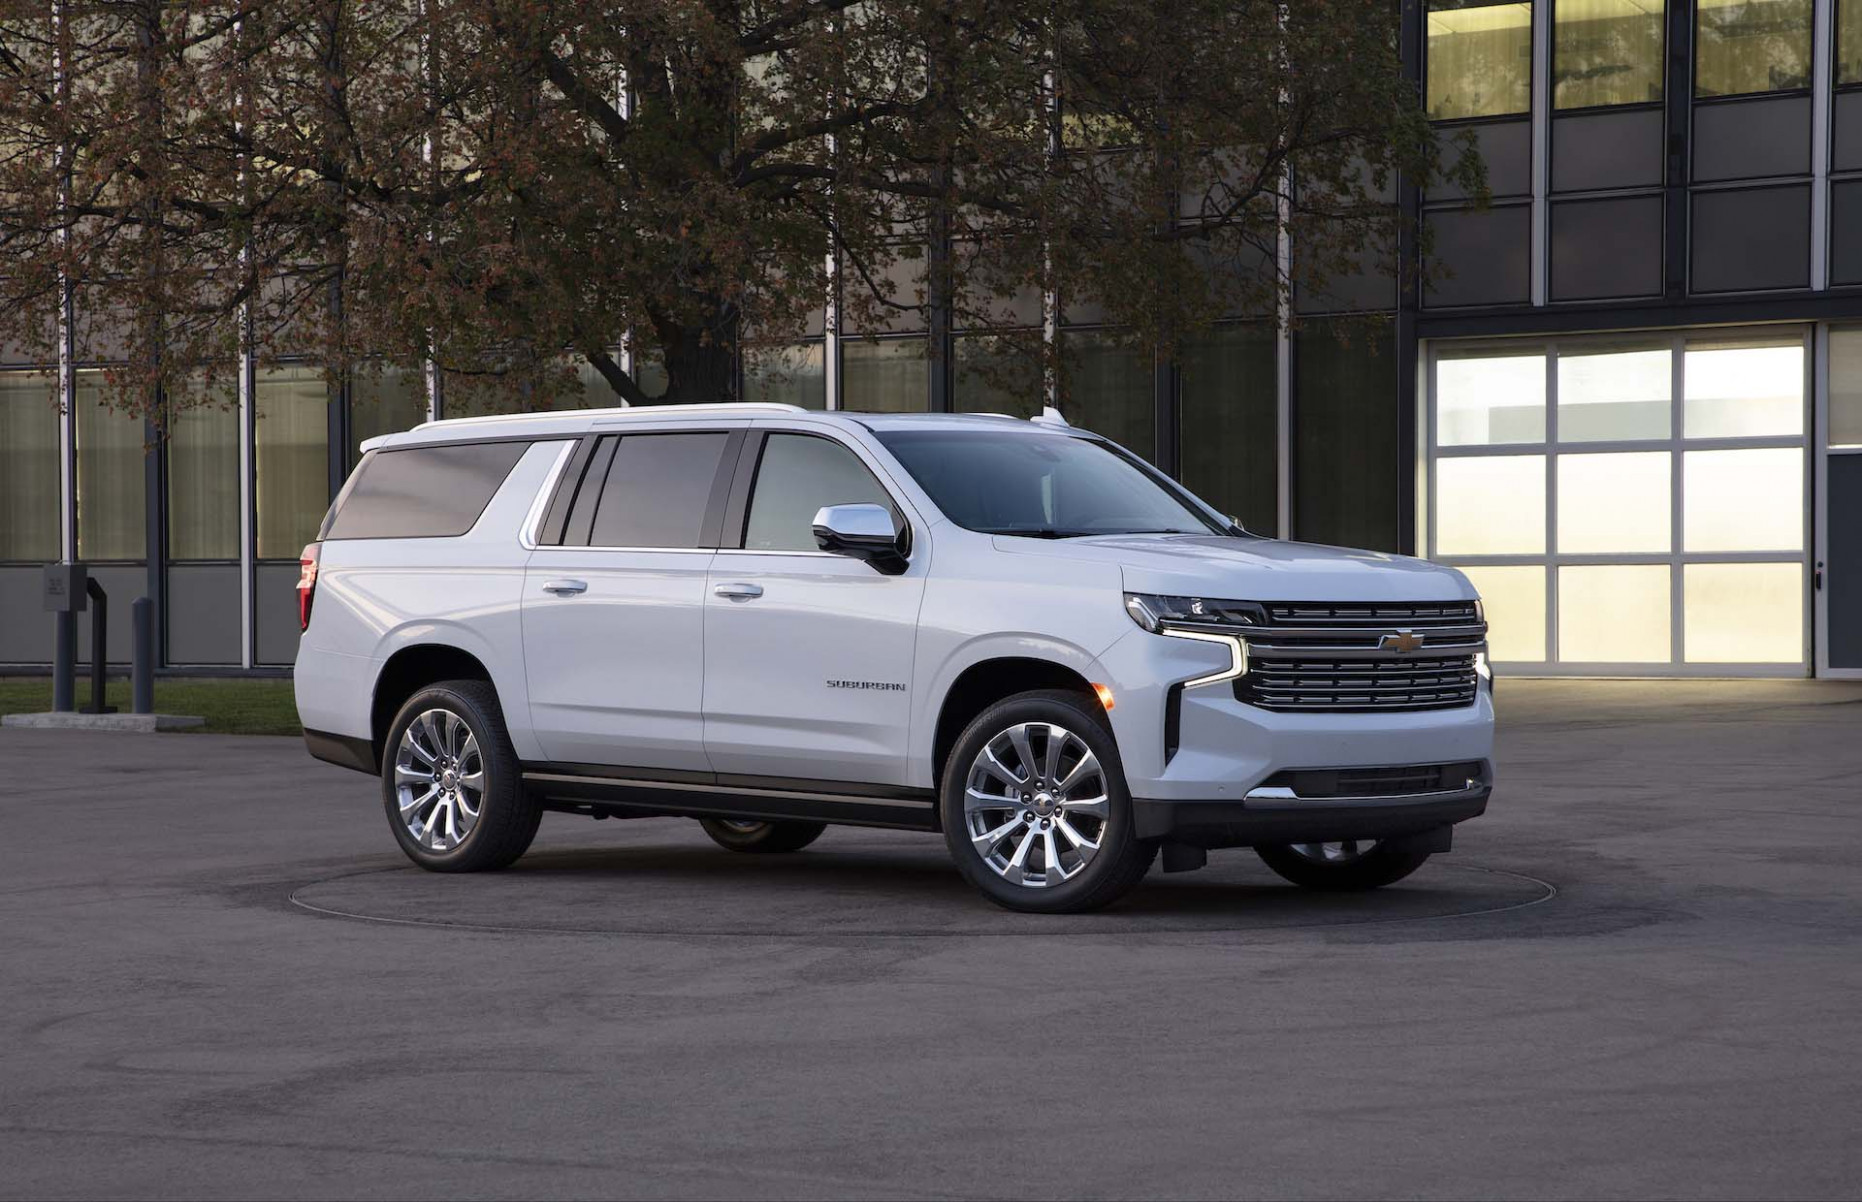 11 Chevrolet Suburban (Chevy) Review, Ratings, Specs, Prices ..